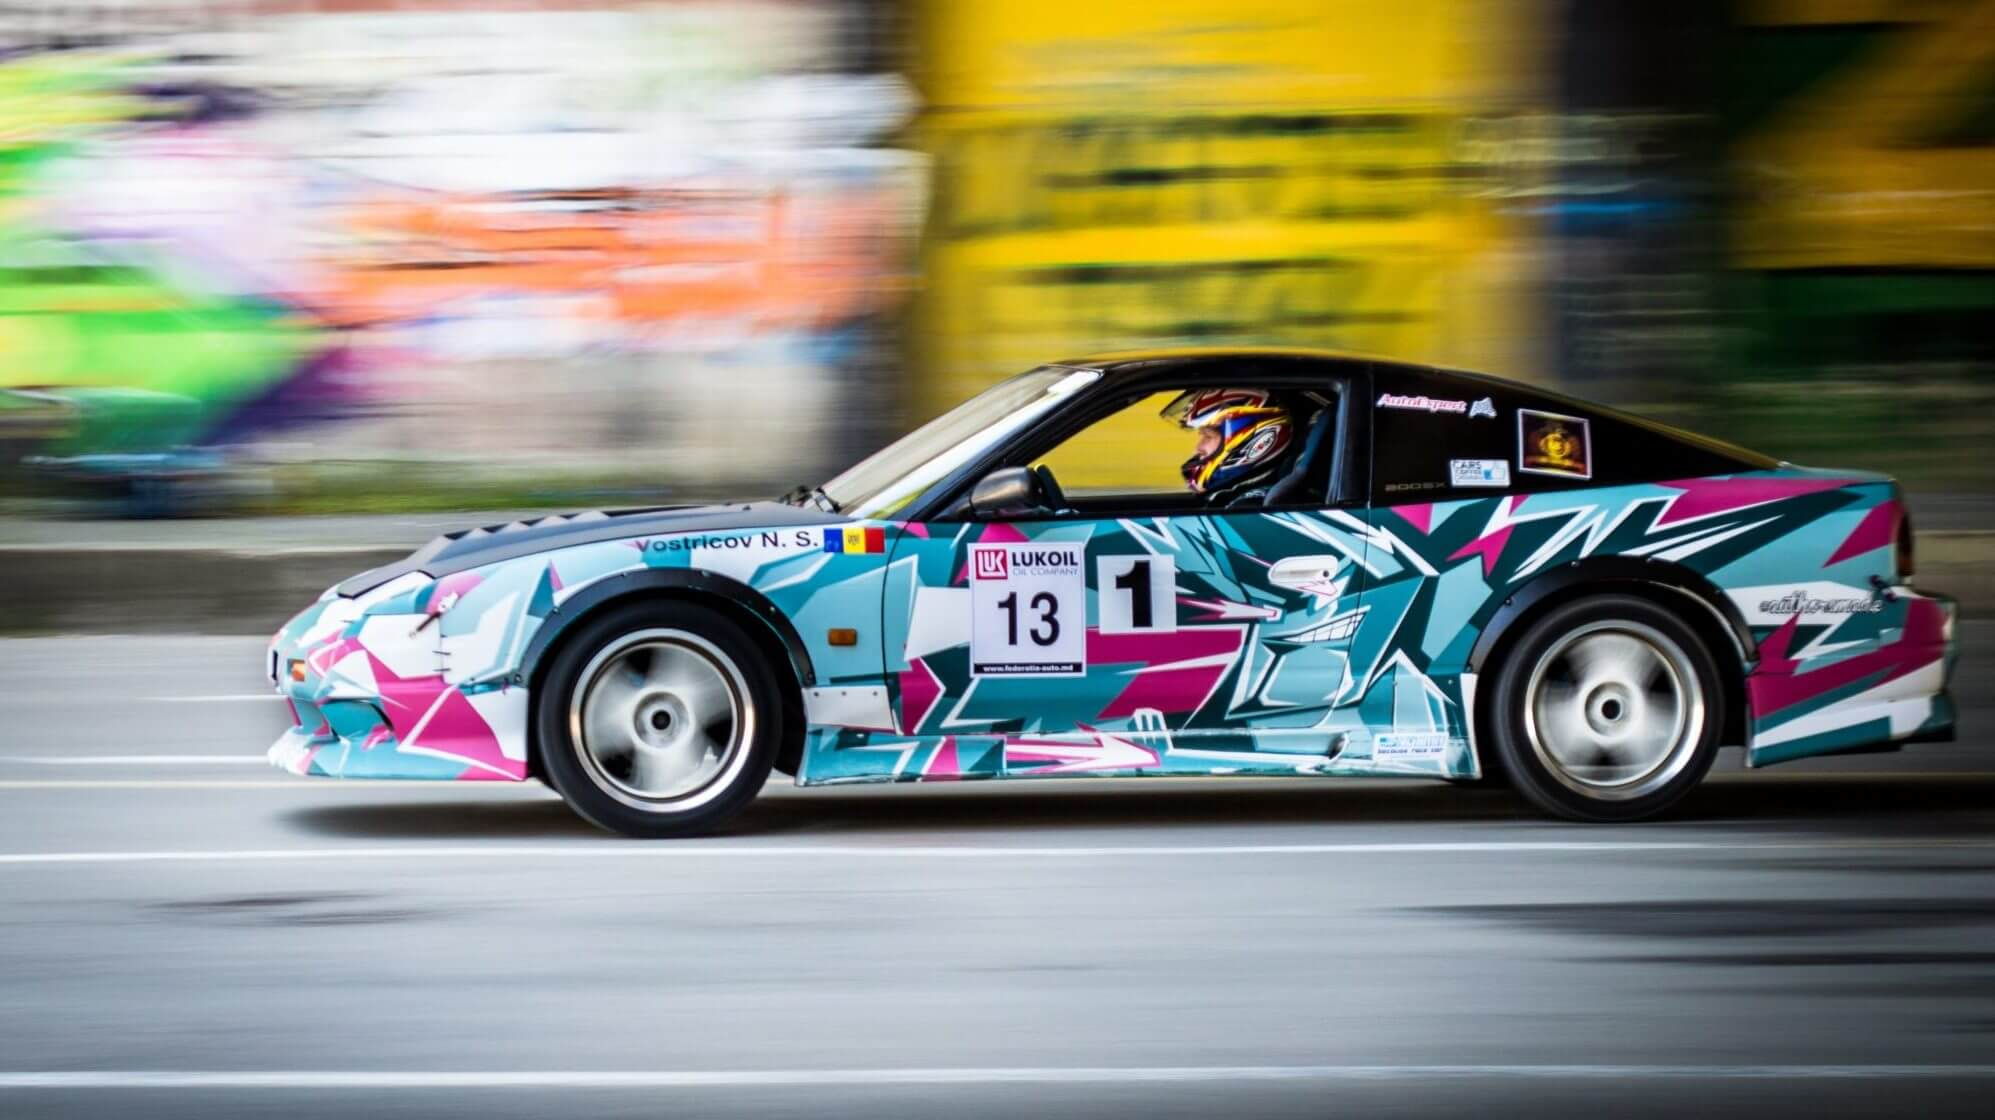 fast car with crazy paint job